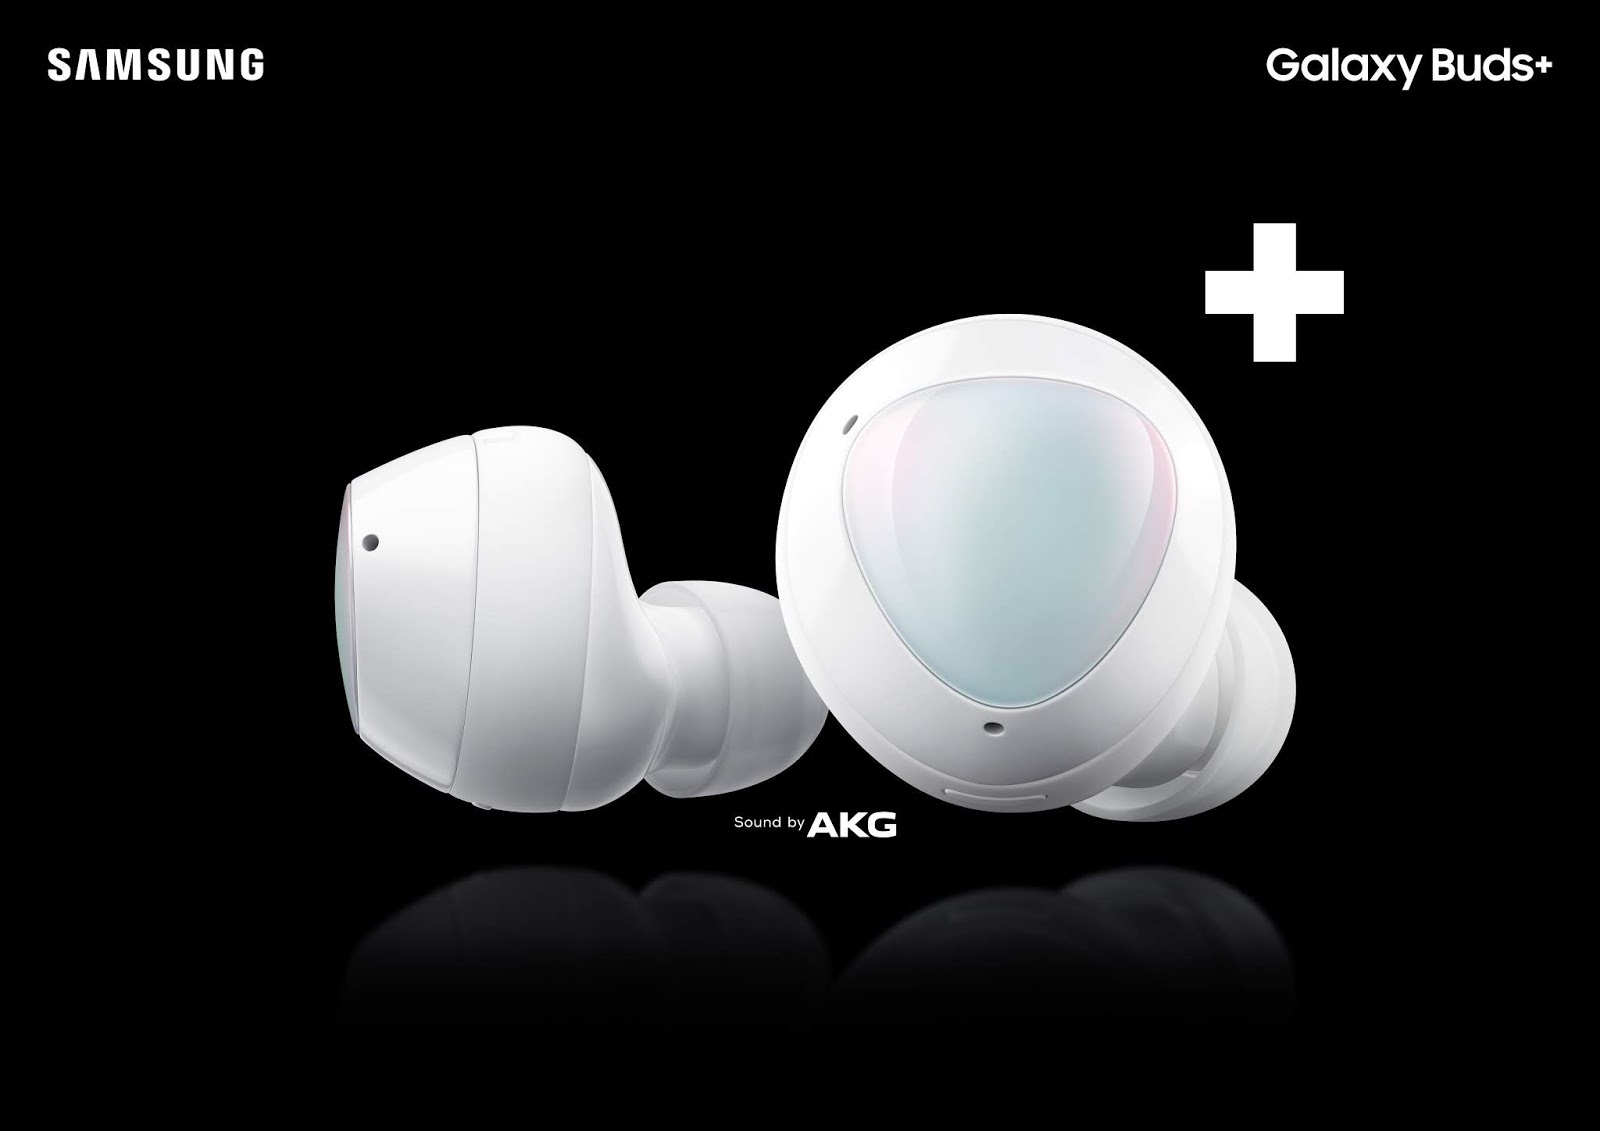 Samsung Galaxy Galaxy Buds Software Updates